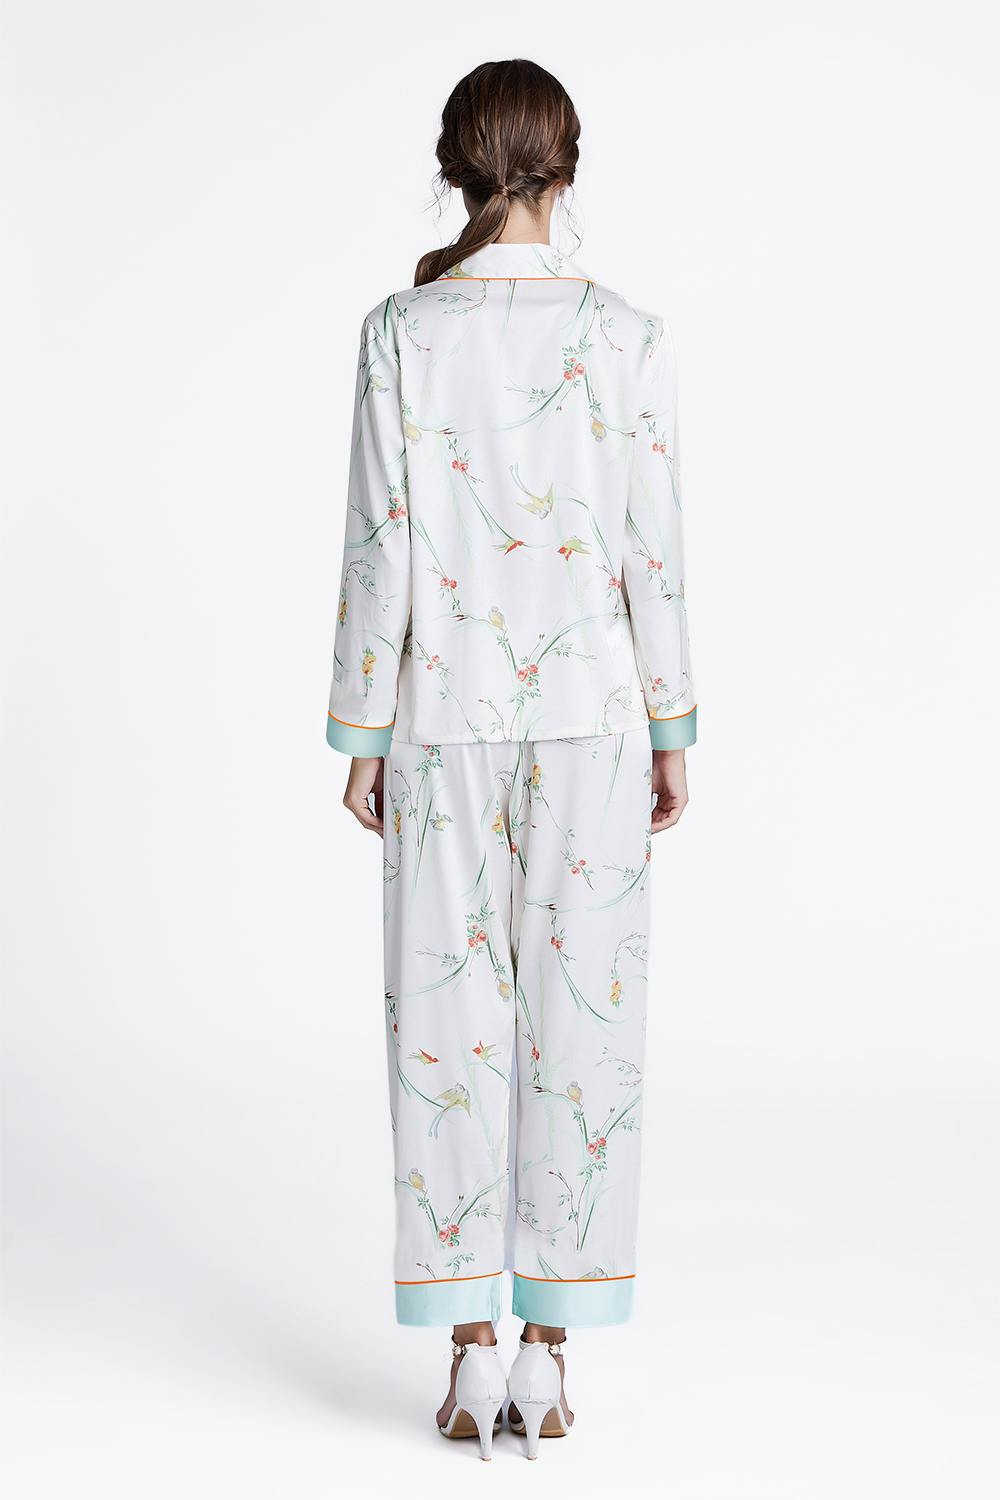 Fall Satin Print Long Sleeves Pajamas Set